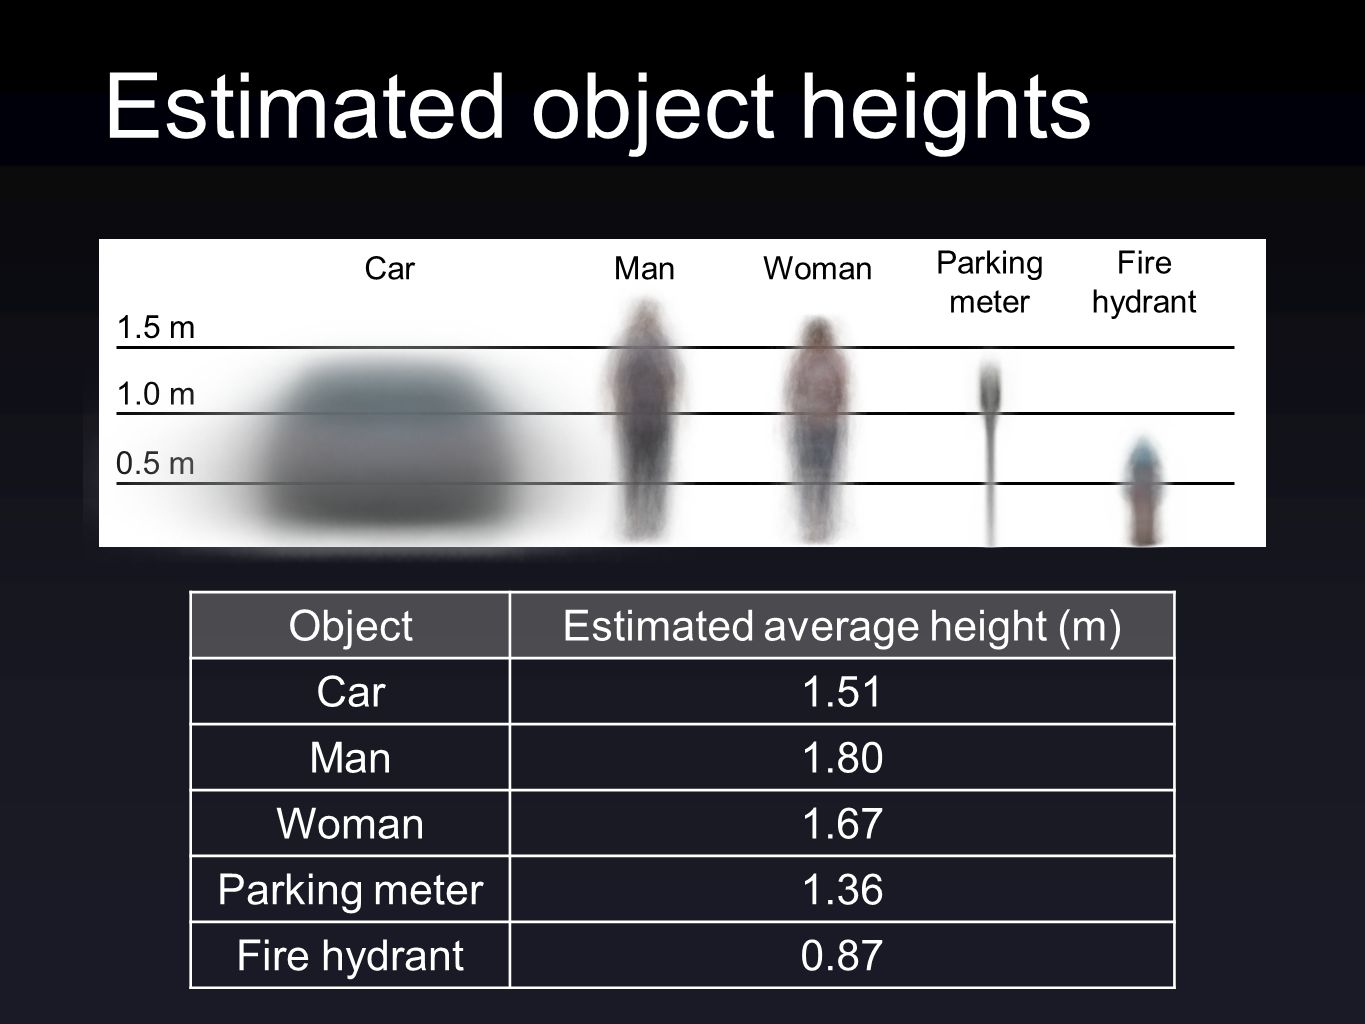 ObjectEstimated average height (m) Car1.51 Man1.80 Woman1.67 Parking meter1.36 Fire hydrant0.87 Estimated object heights 1.0 m Car 0.5 m ManWoman Parking meter Fire hydrant 1.5 m